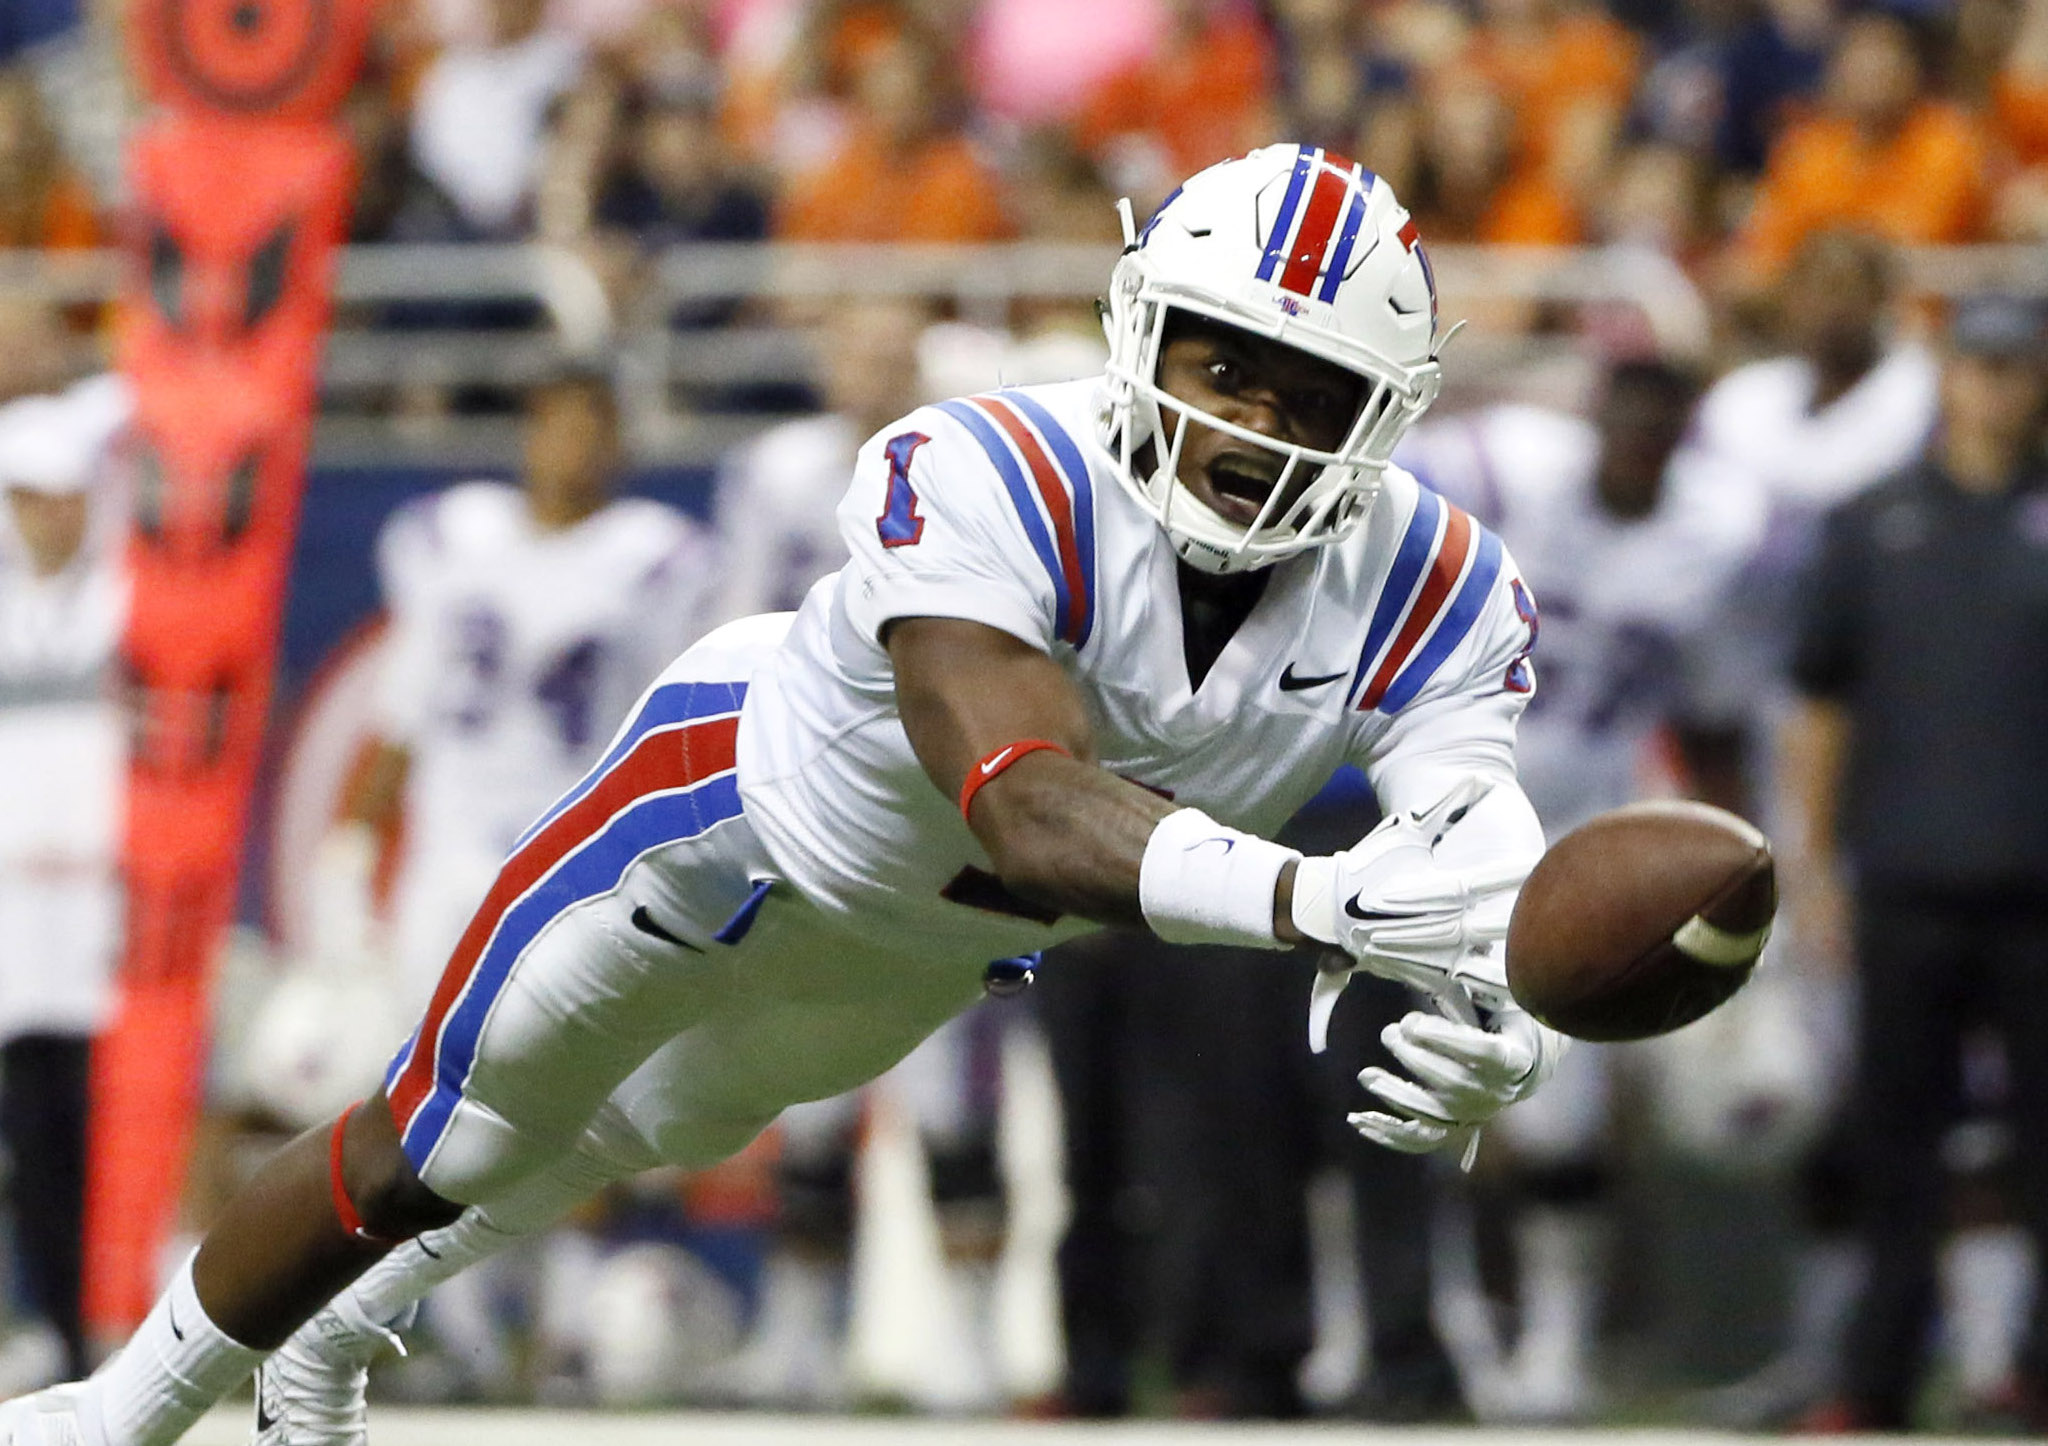 2017 NFL Draft: Louisiana Tech's Carlos Henderson and Trent Taylor Lead December 23rd Bowl Previews